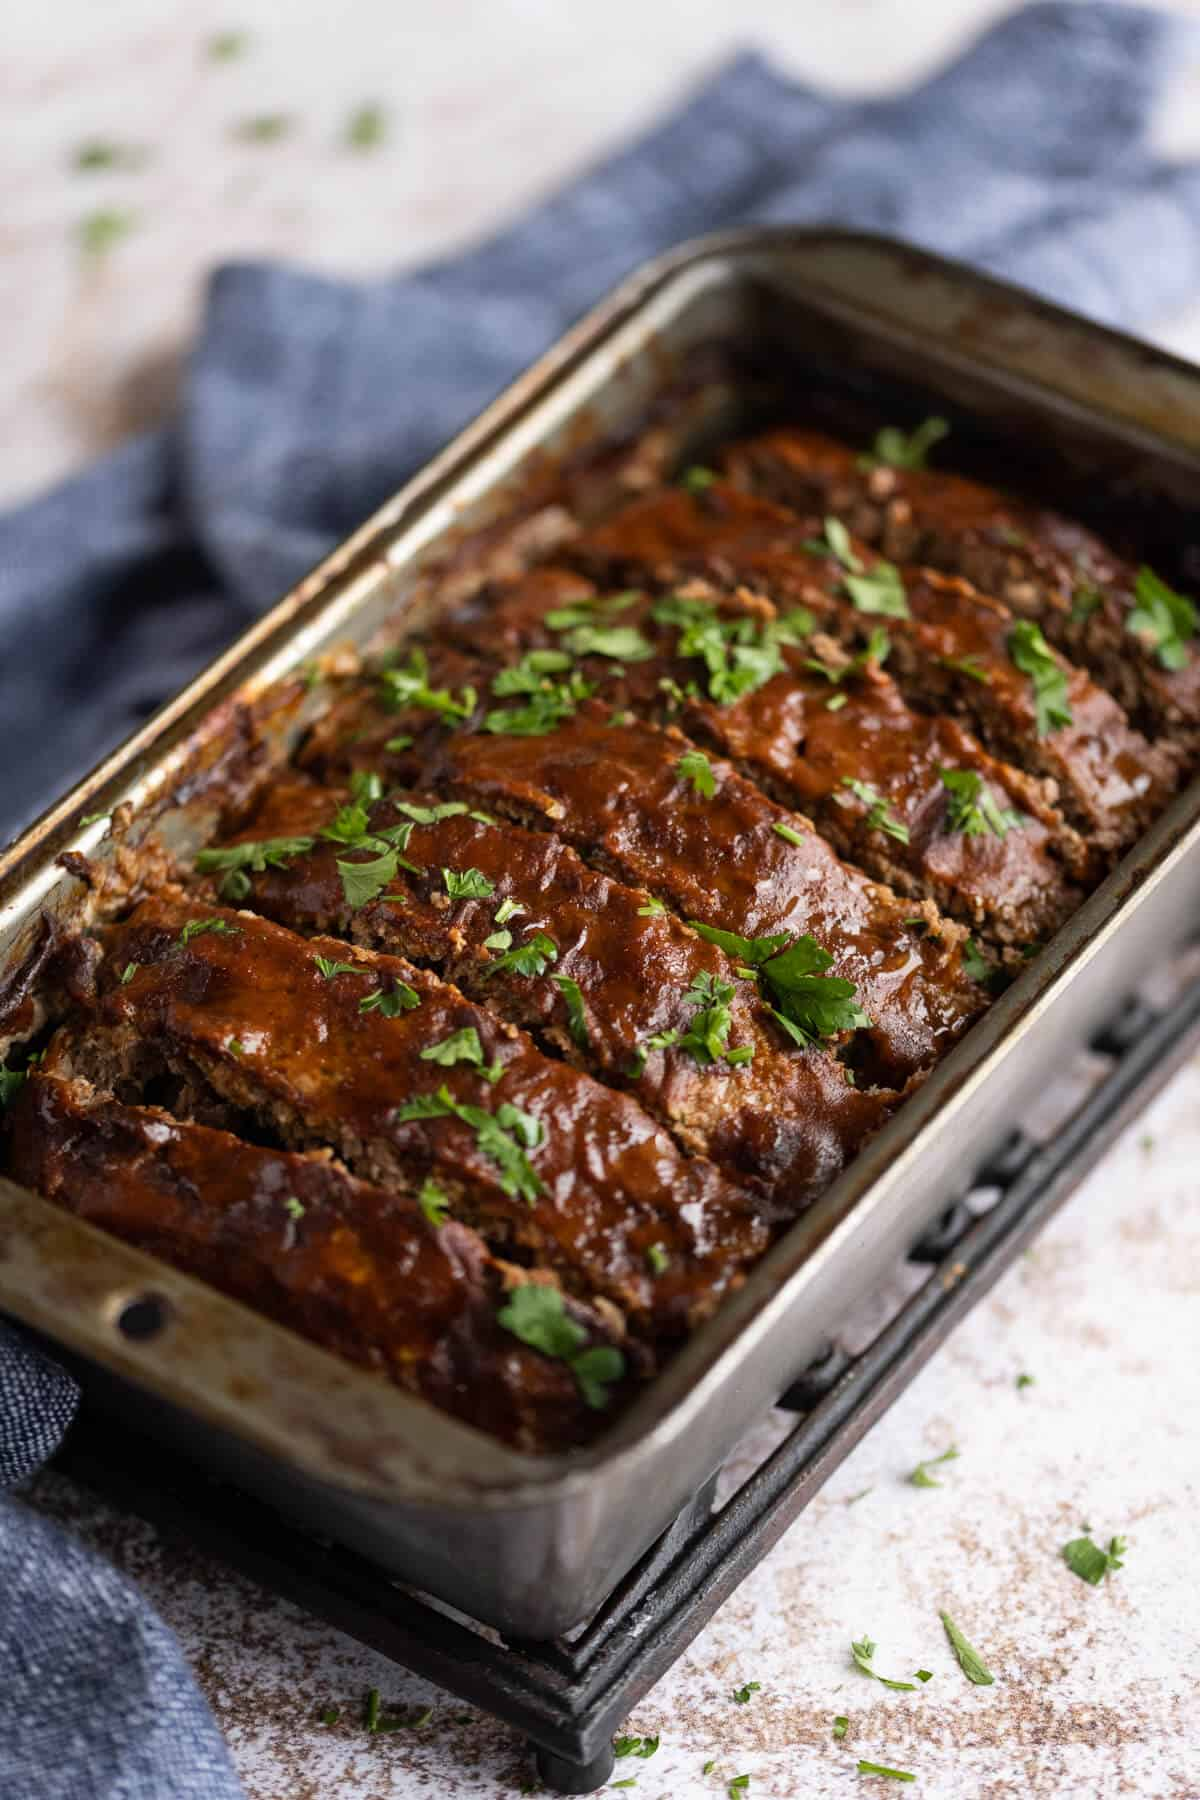 cooked meatloaf in a loaf pan that has been glazed with bbq sauce and garnished with fresh parsley